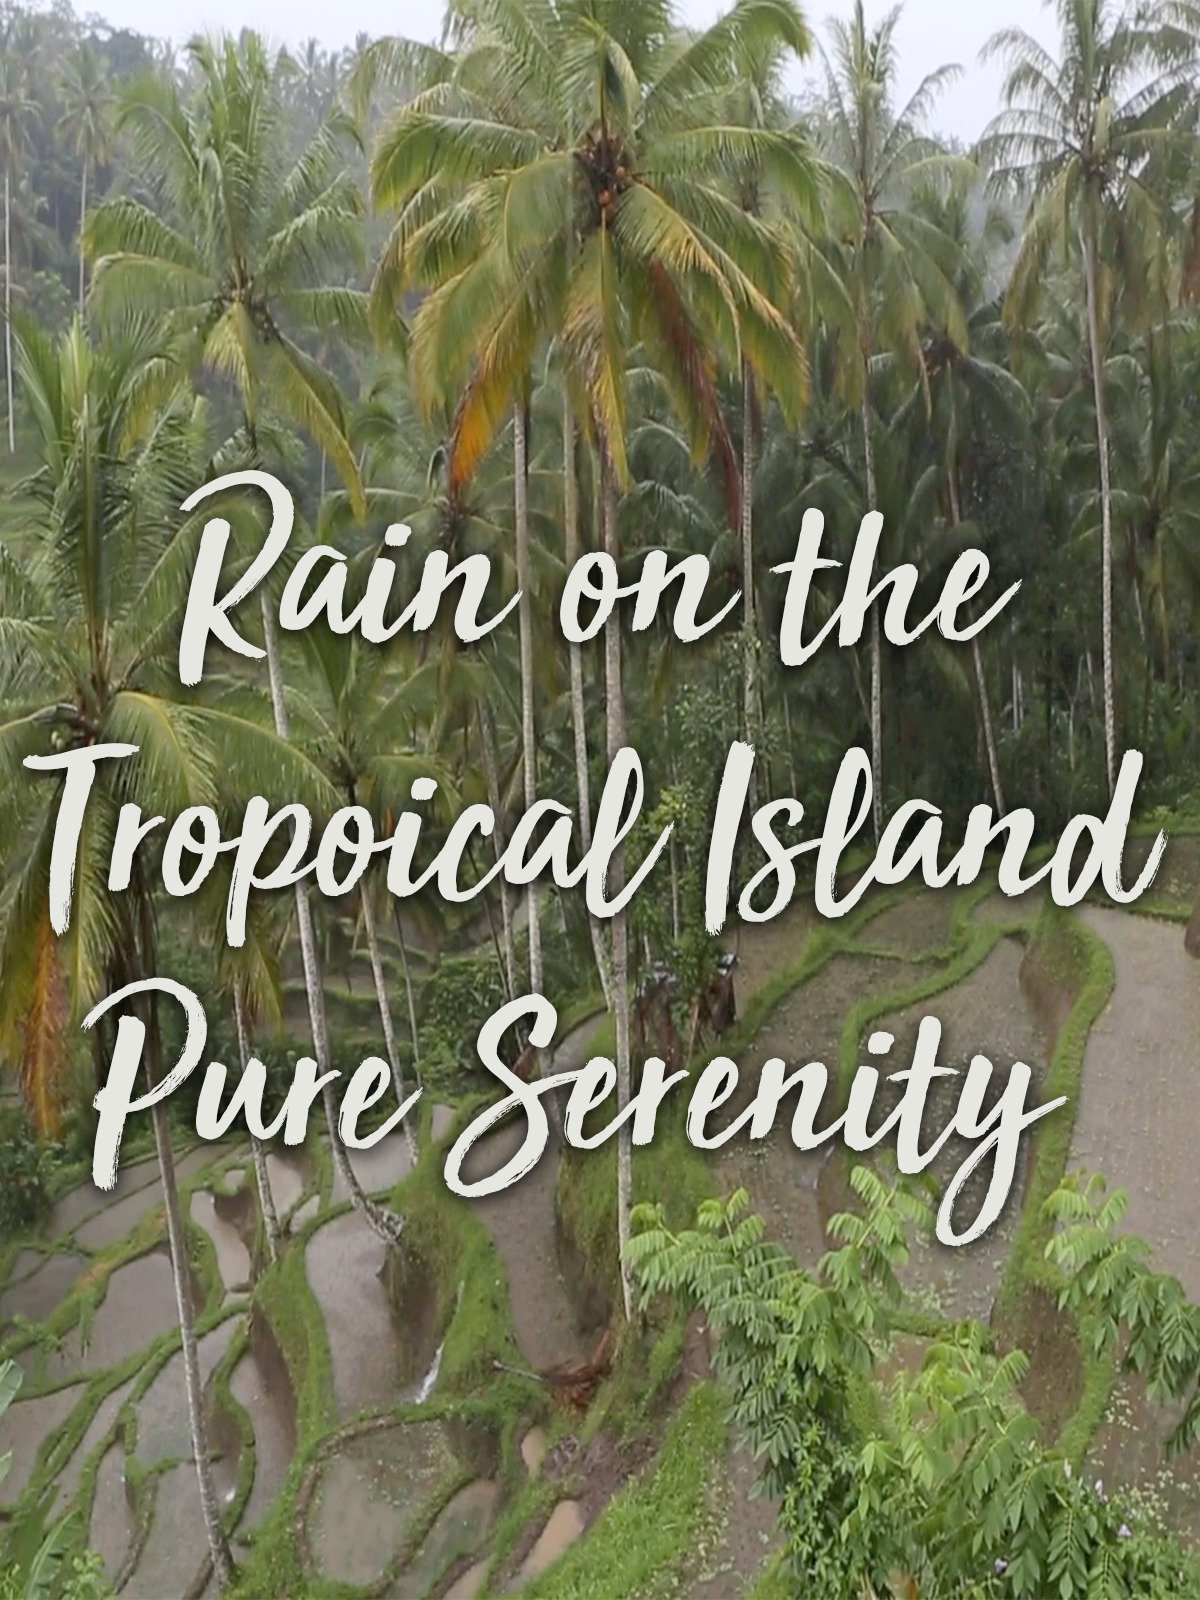 Rain on the Tropical Island Pure Serenity